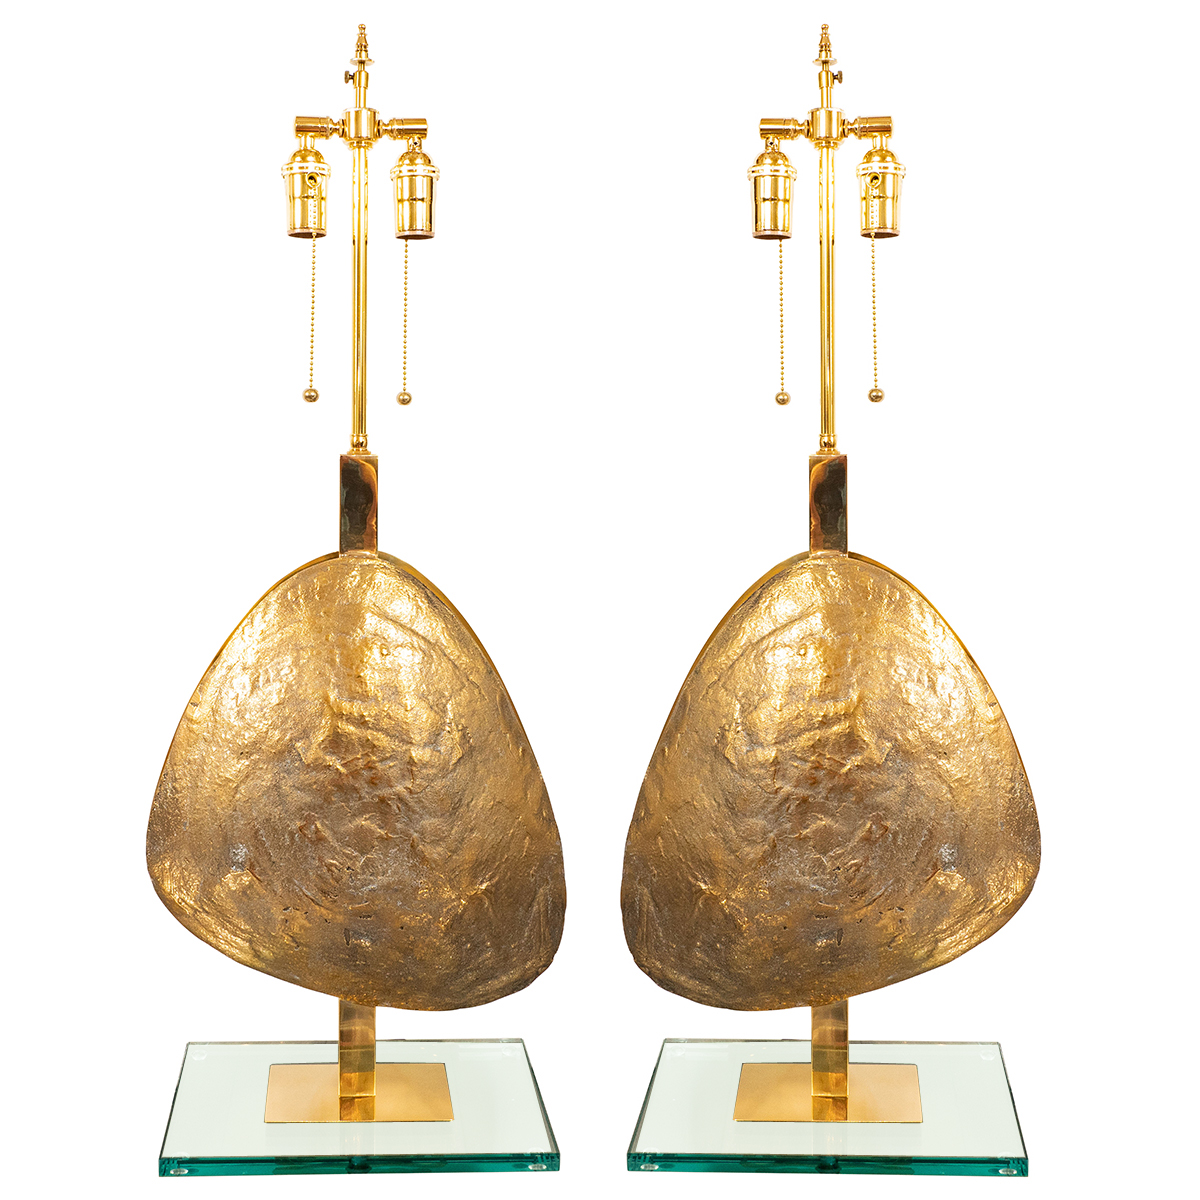 Pair of hammered brass pebble table lamps table lamps john pair of hammered brass pebble table lamps table lamps john salibello aloadofball Images